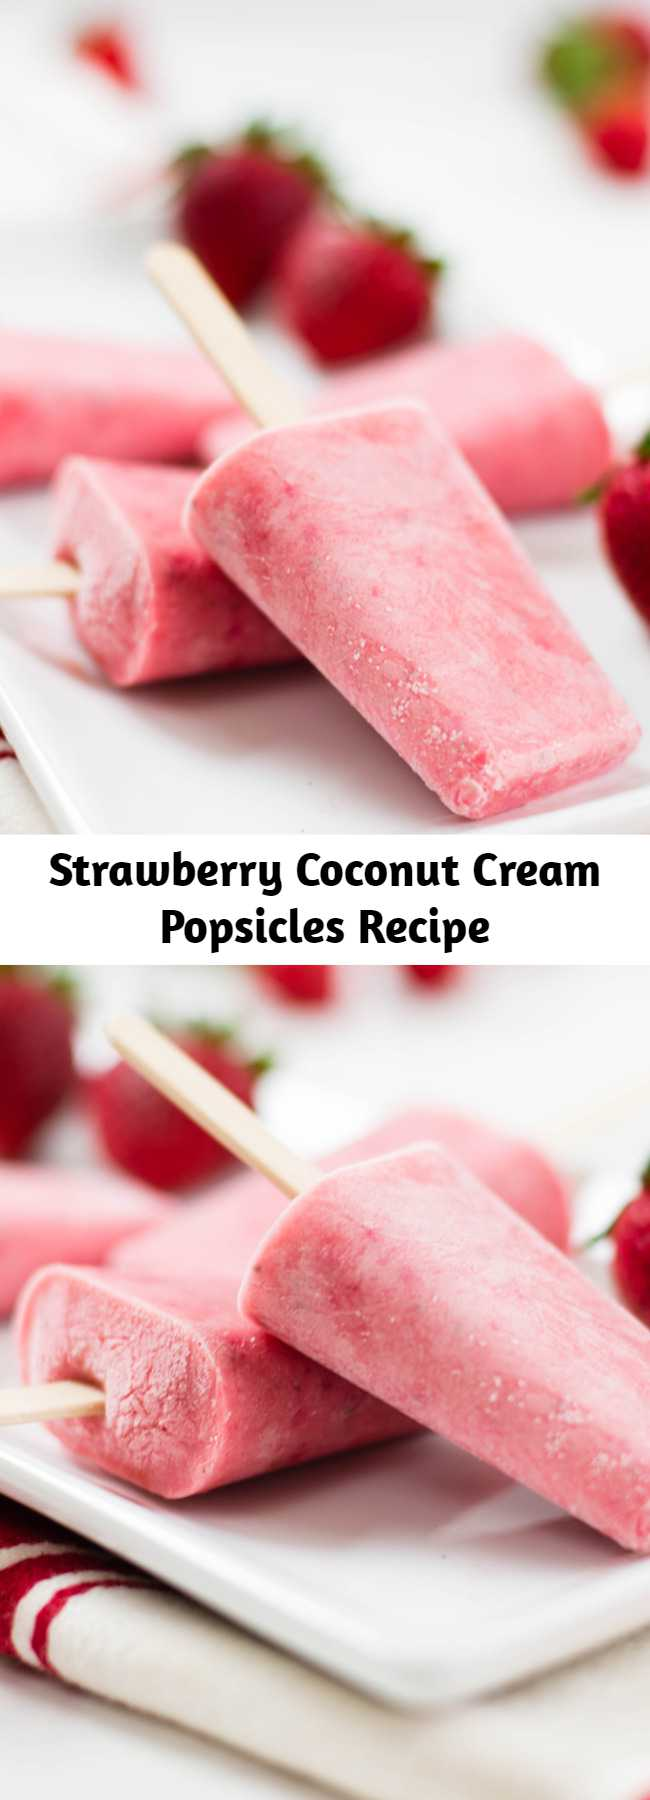 Strawberry Coconut Cream Popsicles Recipe - This is a berry sweet way to cool off this summer.